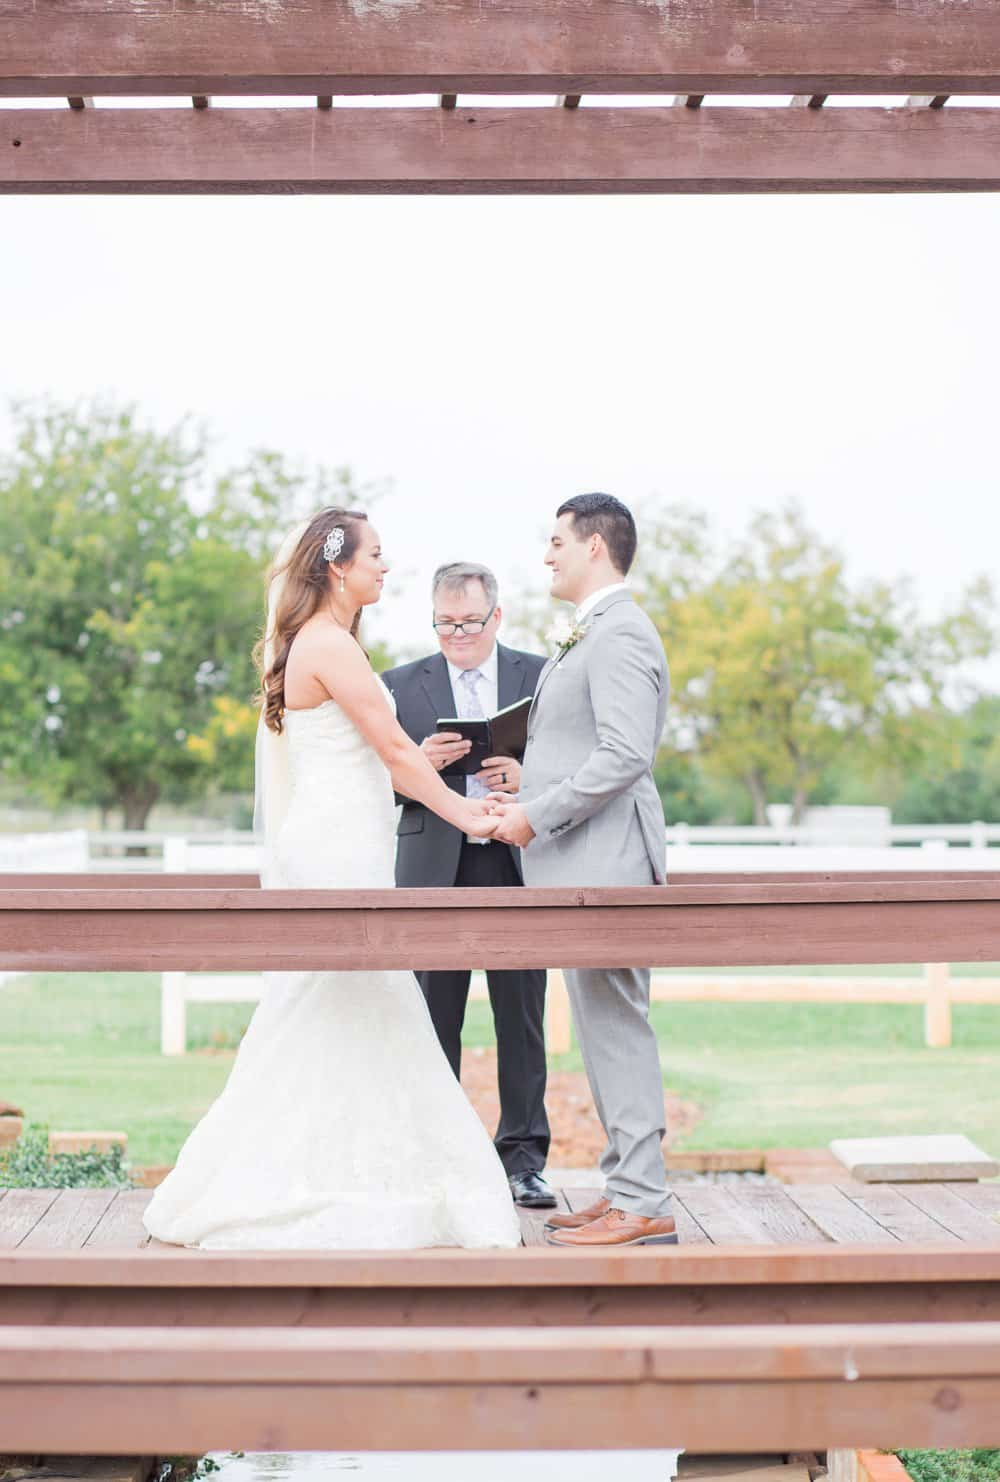 AirBnB Wedding in Texas